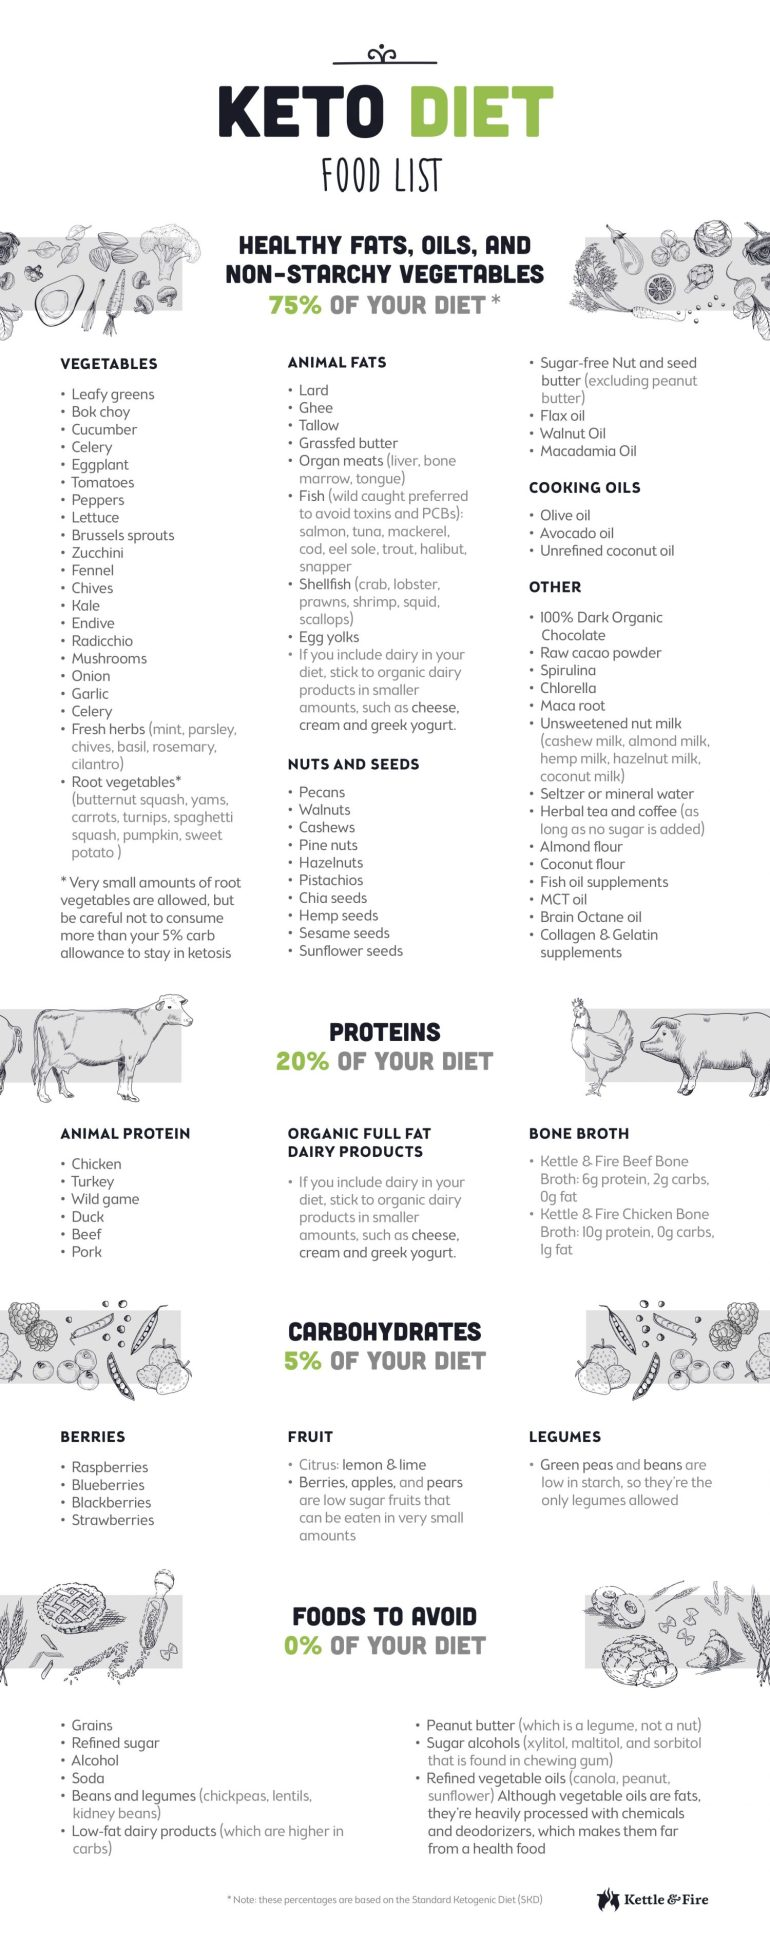 Keto-Diet-Food-List-Infographic-e1496168968131.jpg?resize=770%2C1946&ssl=1